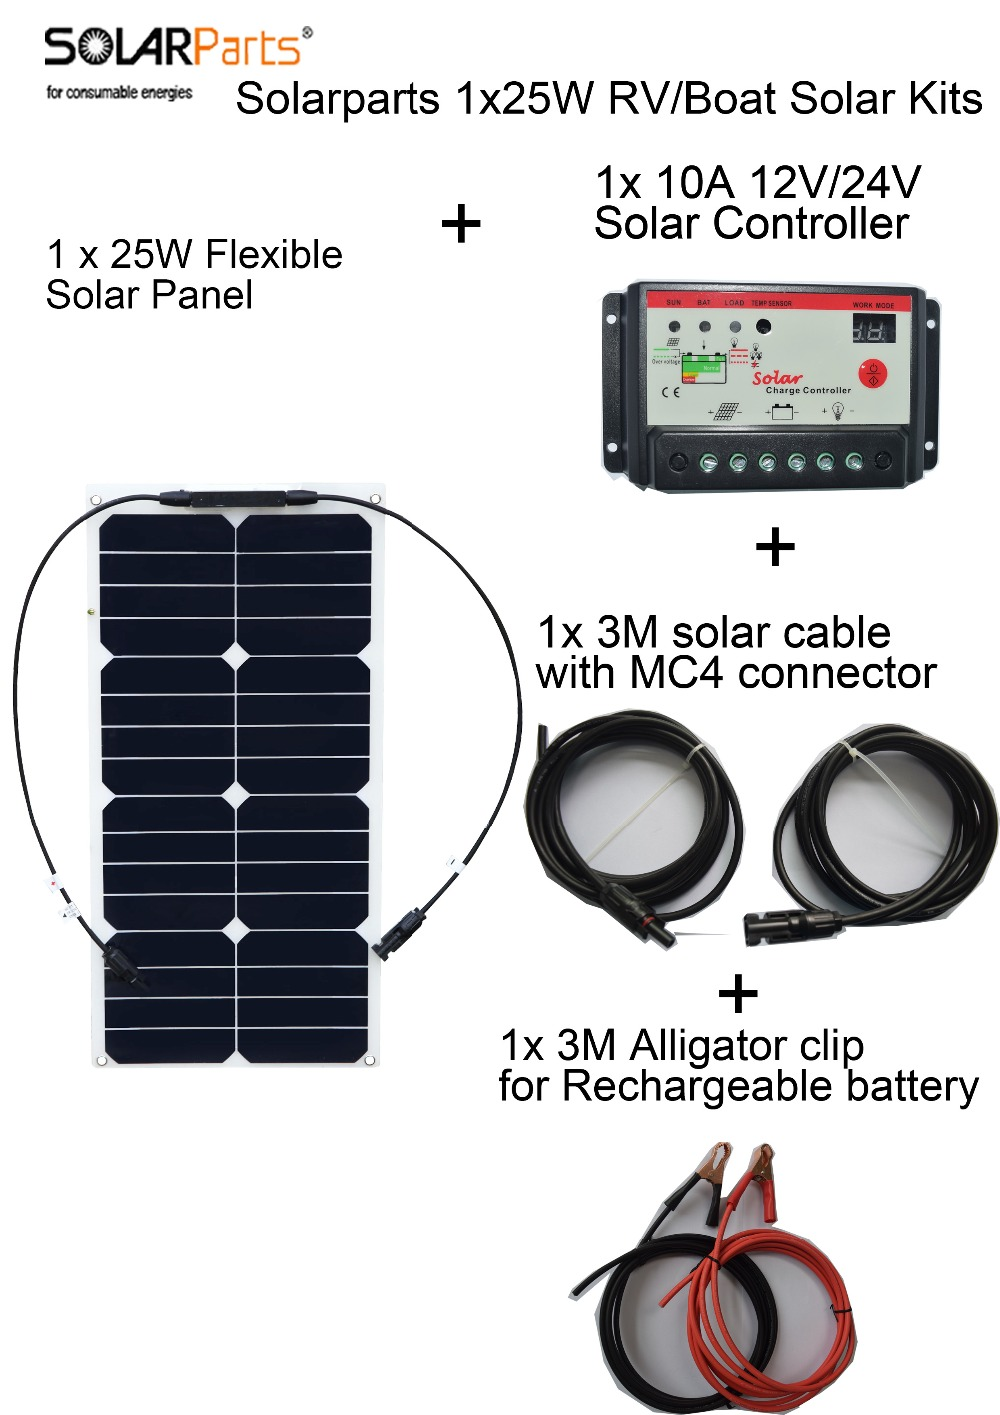 Solarparts  25w flexible solar panel system solar cell controller cable for yacht/RV/light/12v battery solar energy generation solarparts 100w diy rv marine kits solar system1x100w flexible solar panel 12v 1 x10a 12v 24v solar controller set cables cheap